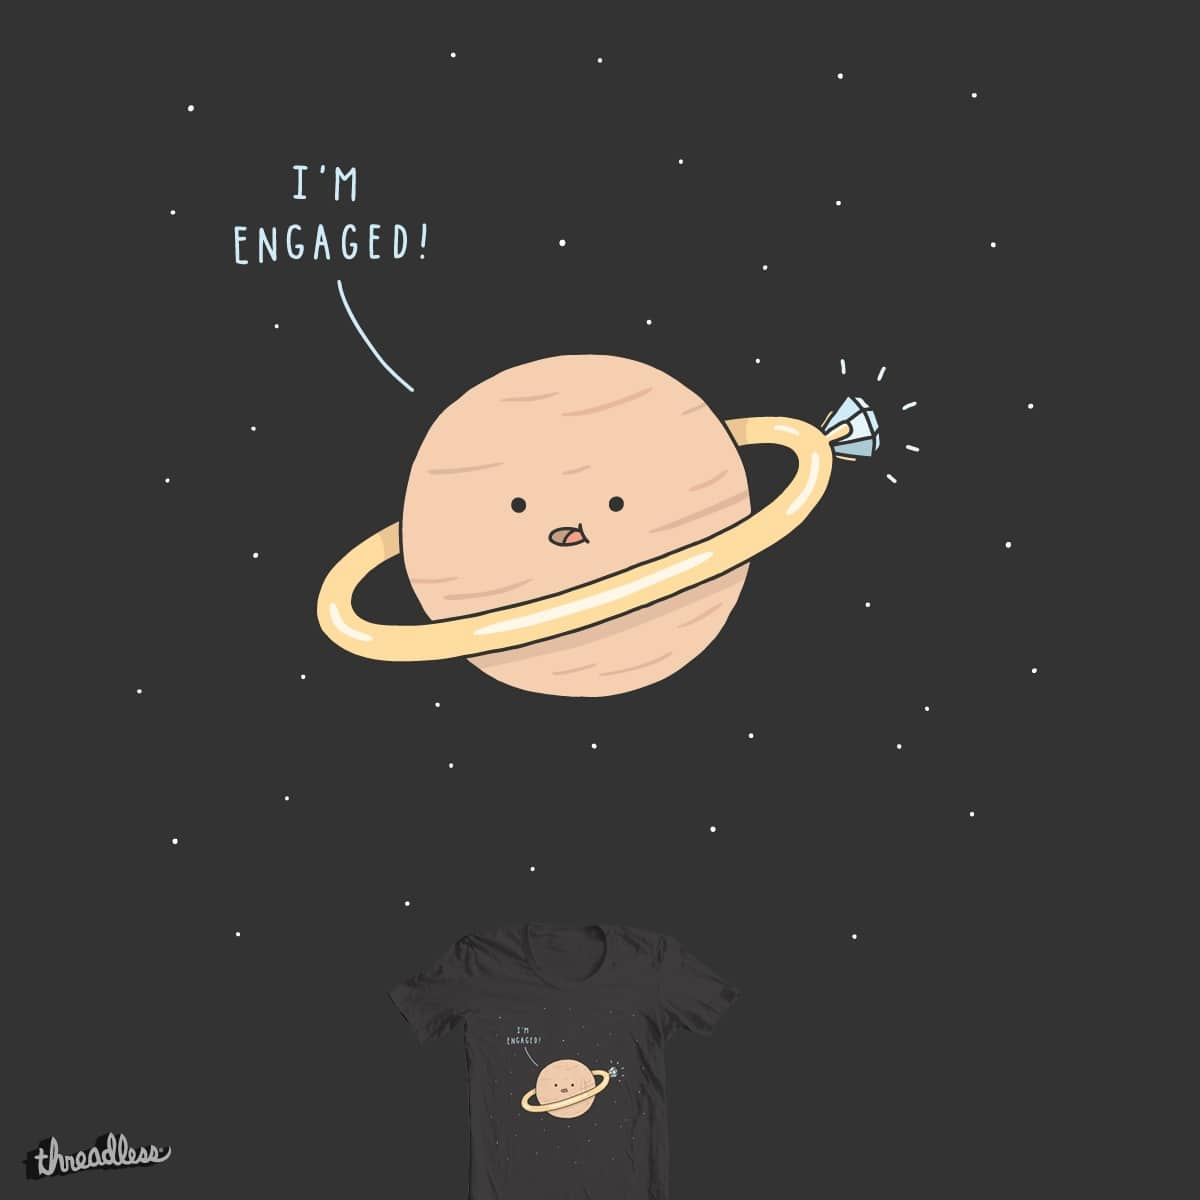 Put A Ring On It by Haasbroek on Threadless